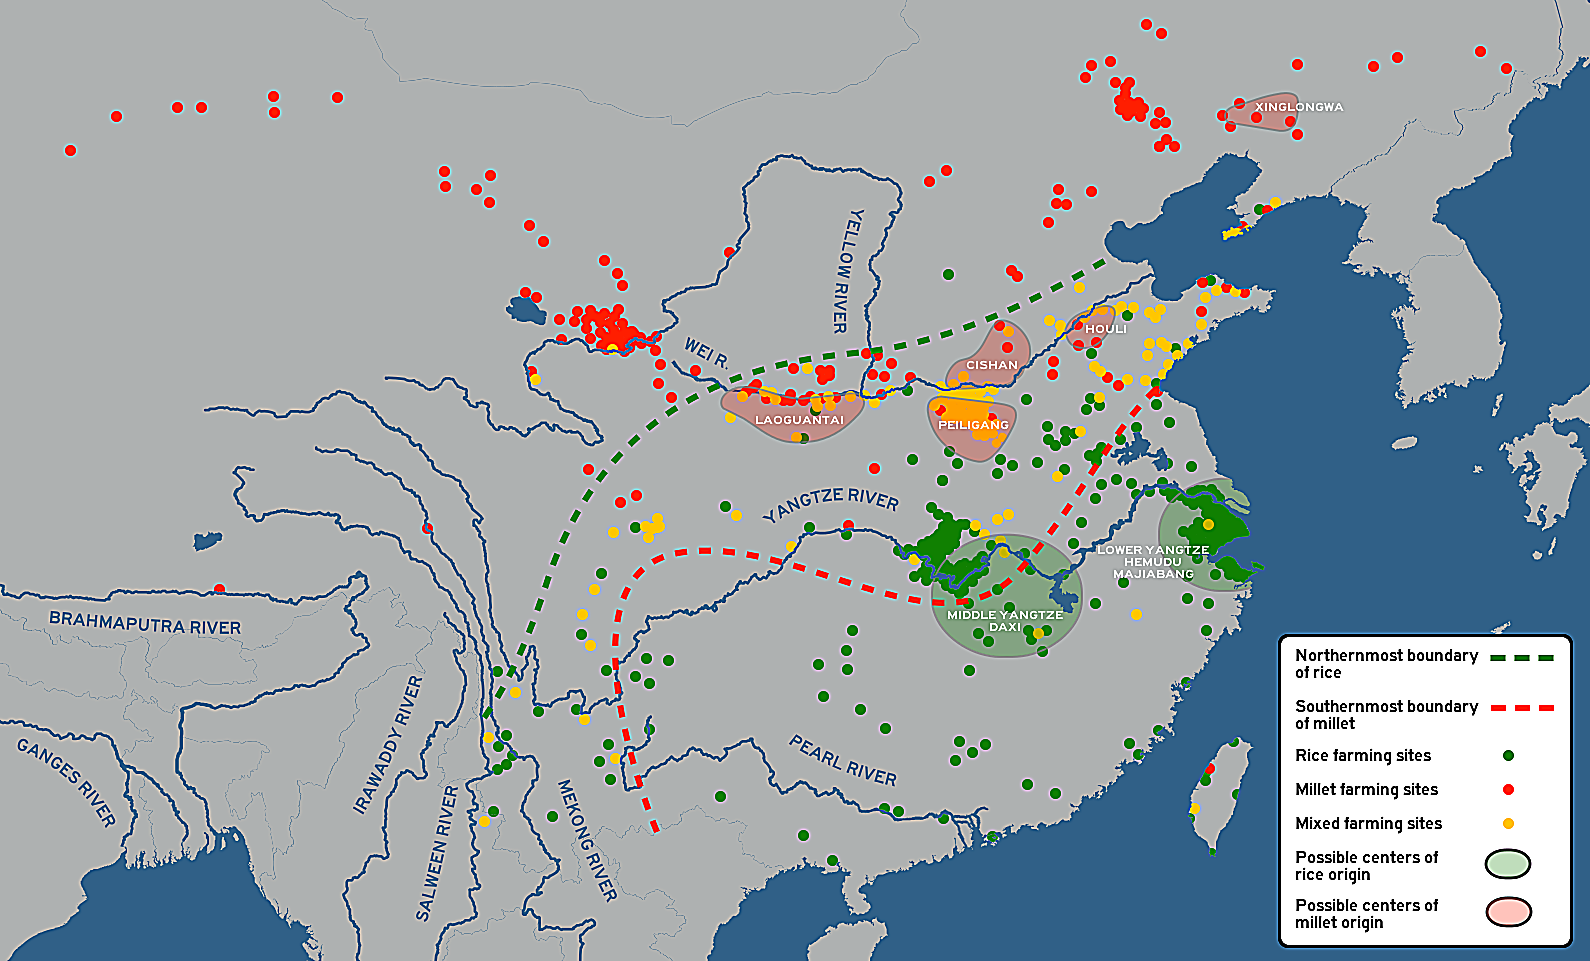 Rice and millet mixed farming sites in neolithic China